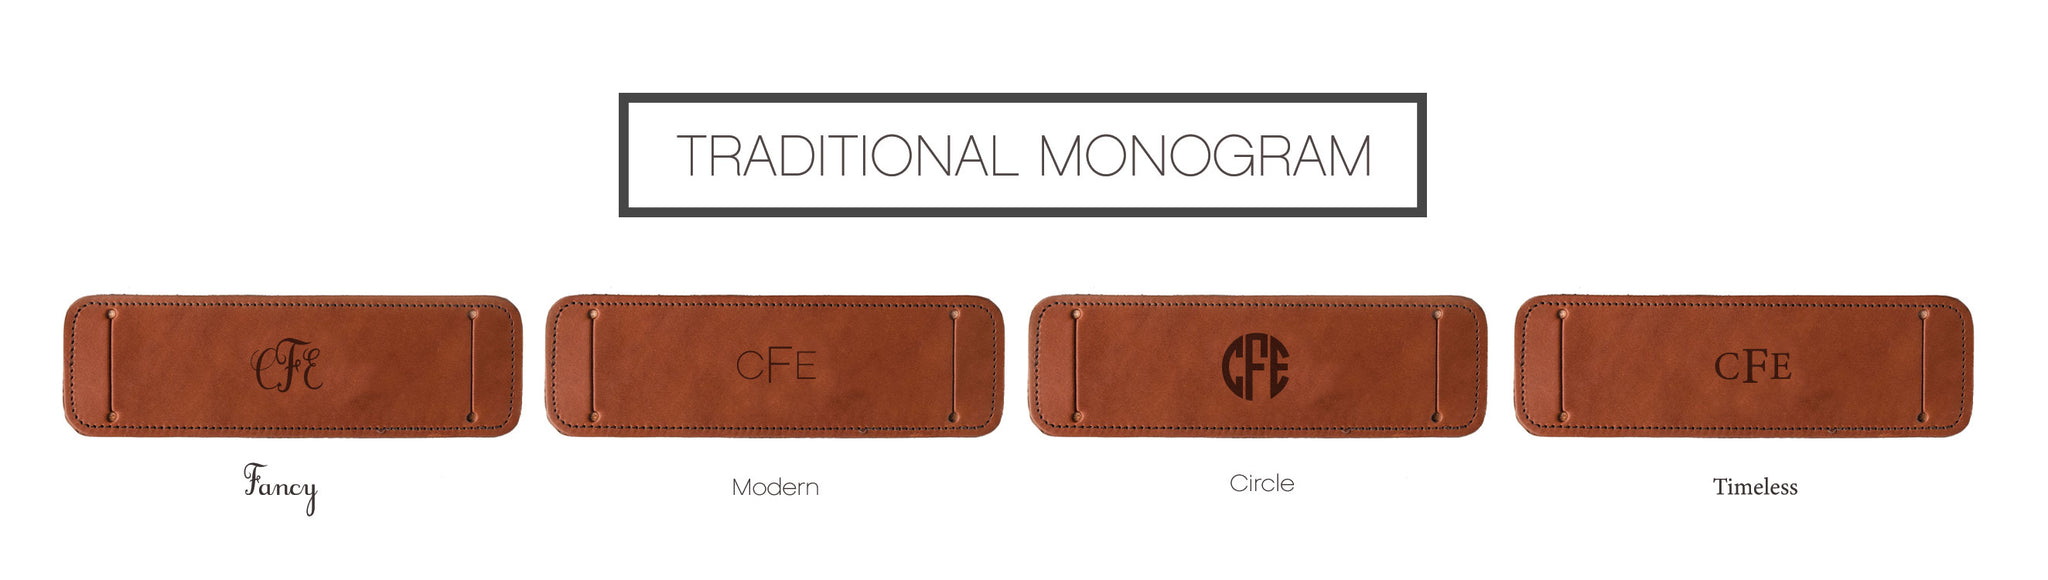 Fotostrap Monogram Personalization Options